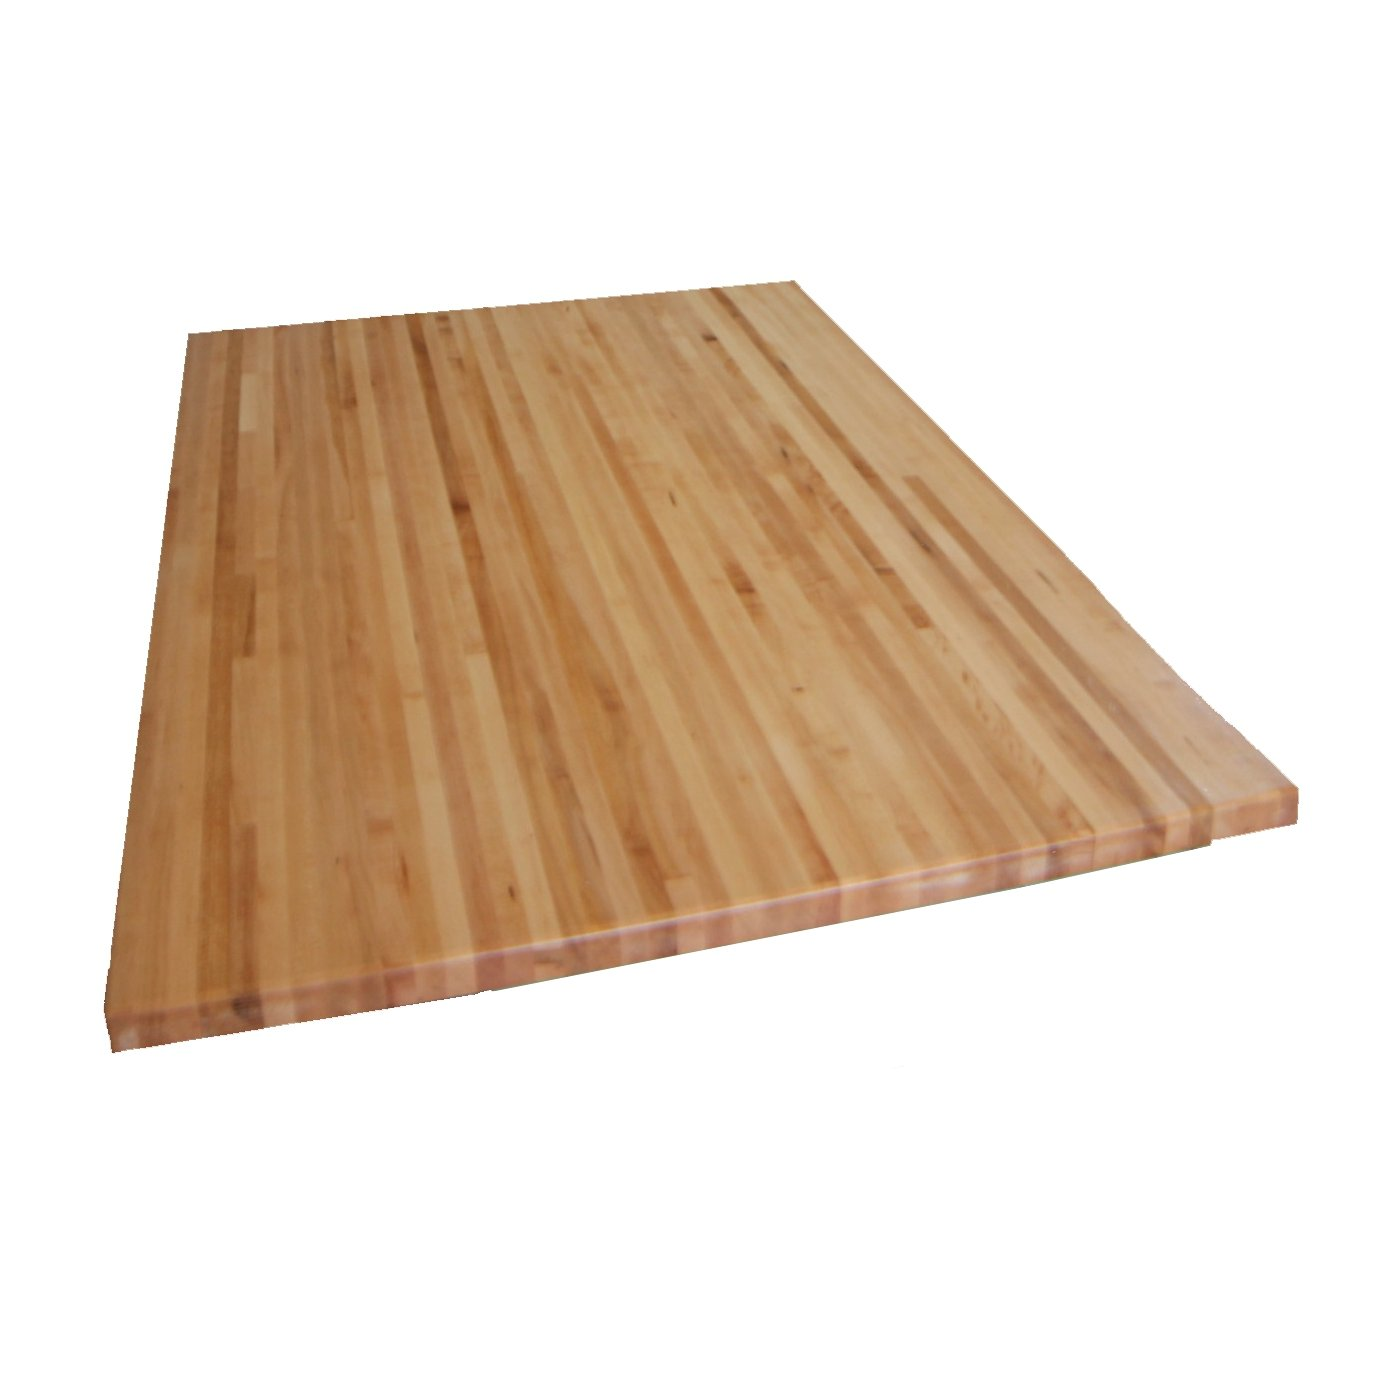 Forever Joint Hard Maple Butcher Block Kitchen Island Top - 1.5'' x 36'' x 72''